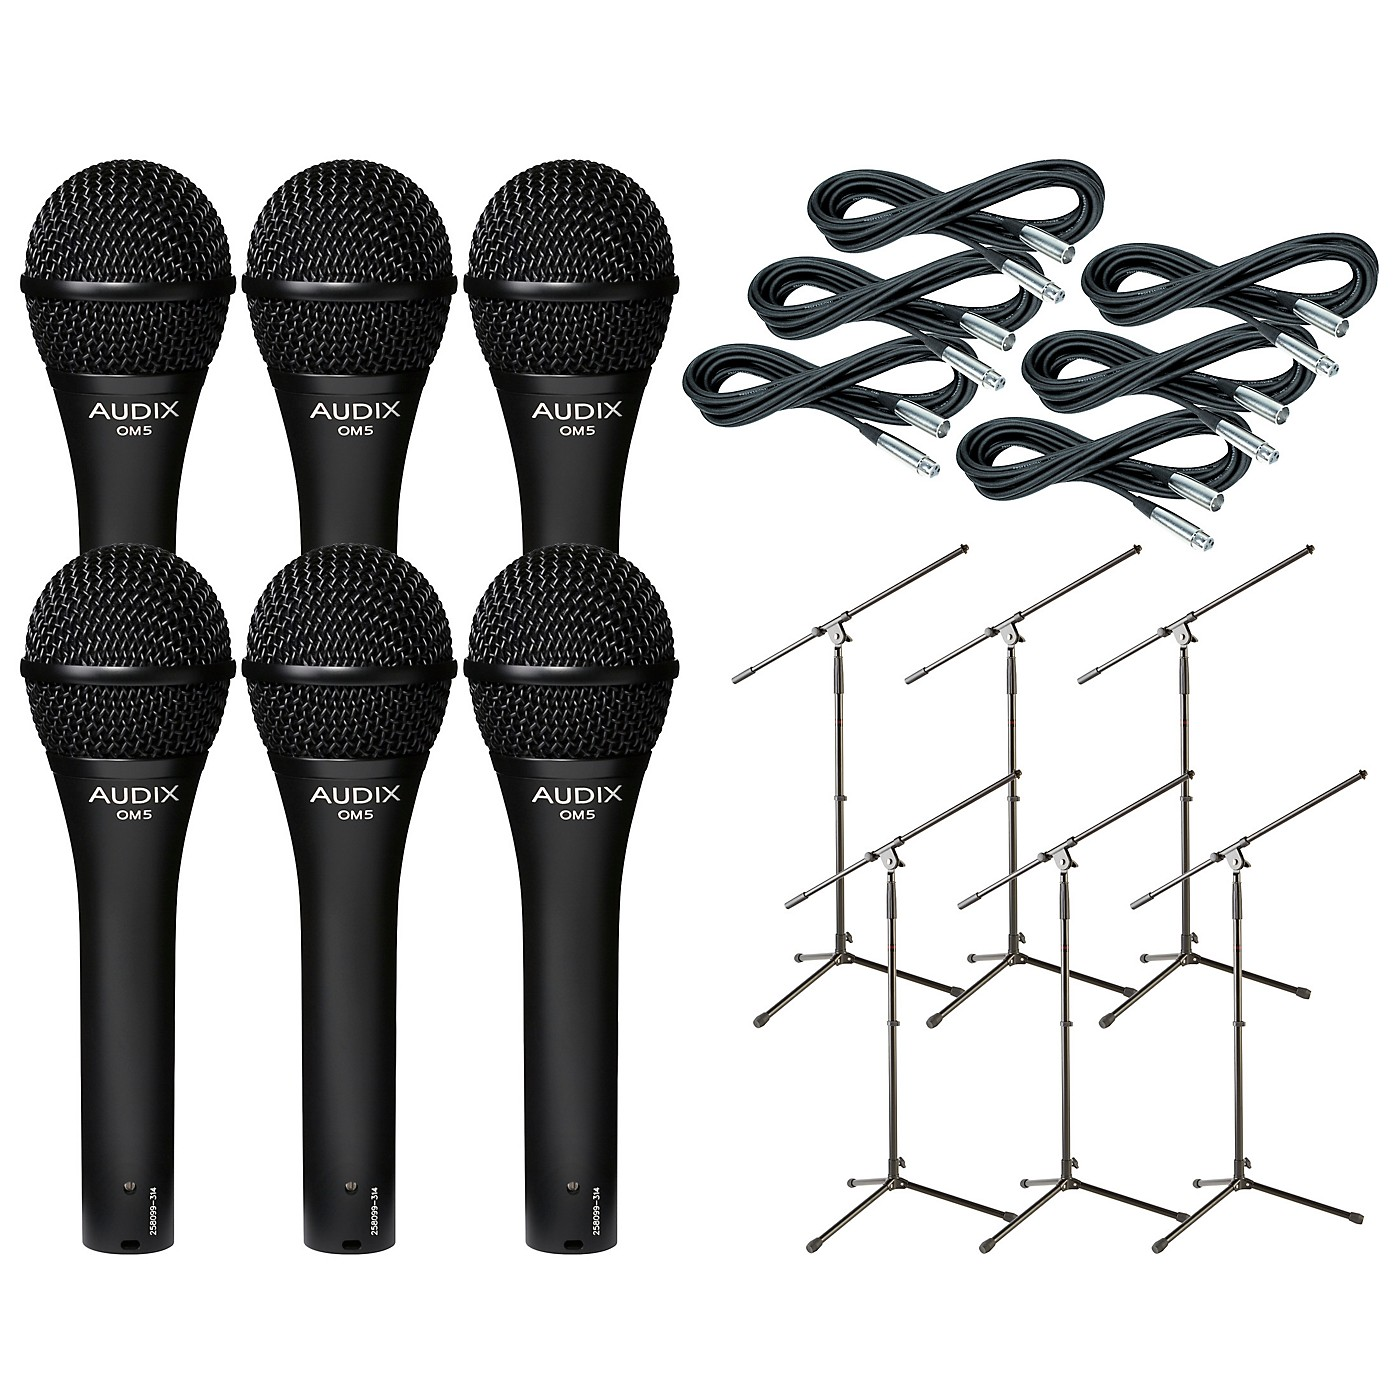 Audix OM-5 Mic with Cable and Stand 6 Pack thumbnail